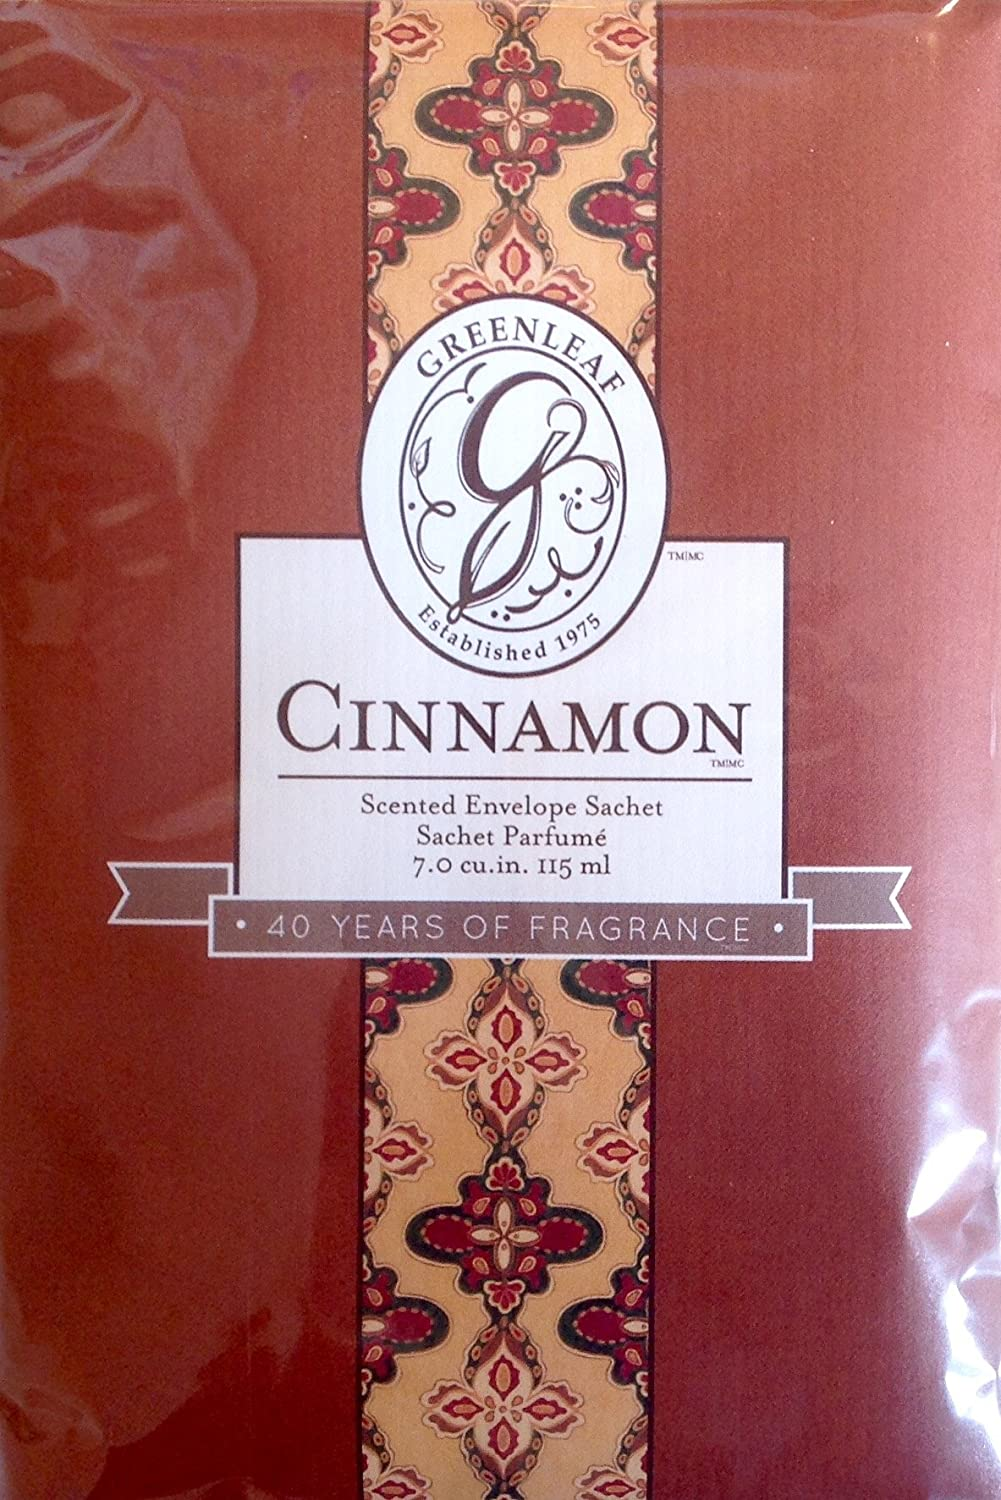 Greenleaf Large Scented Sachet- Cinnamon heart of the country